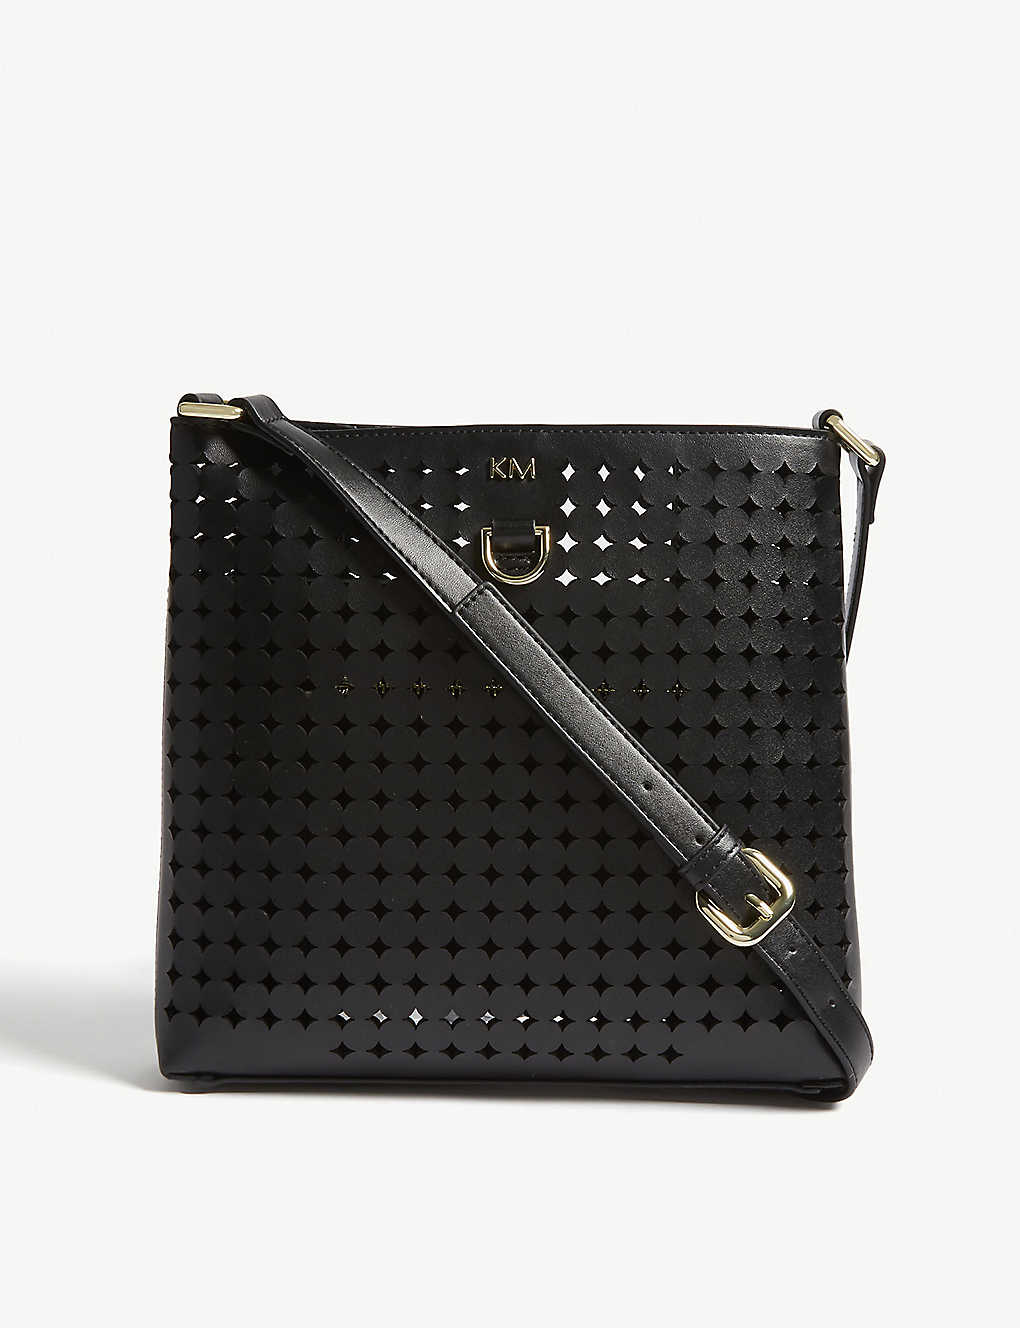 7ce62b7894 KAREN MILLEN - Perforated cross-body bag | Selfridges.com